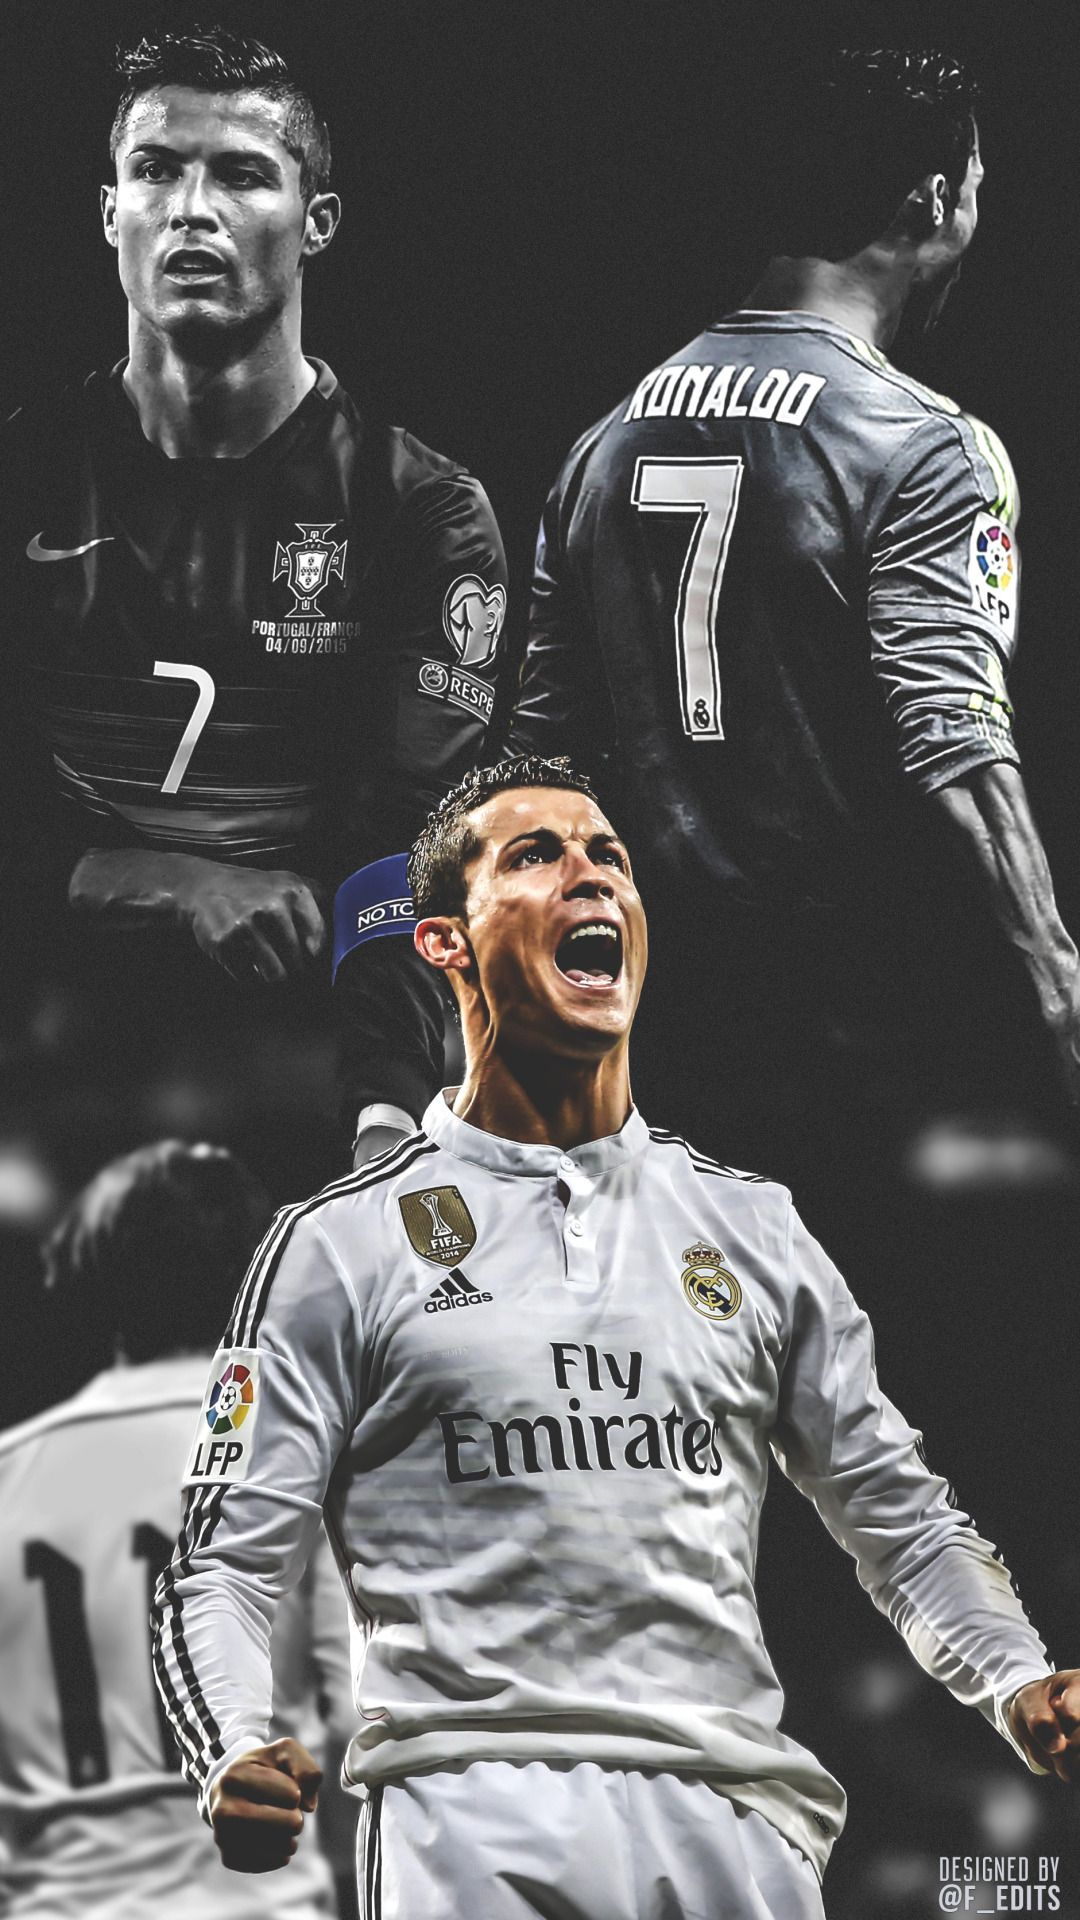 Cristiano Ronaldo iPhone wallpaper Cristiano ronaldo